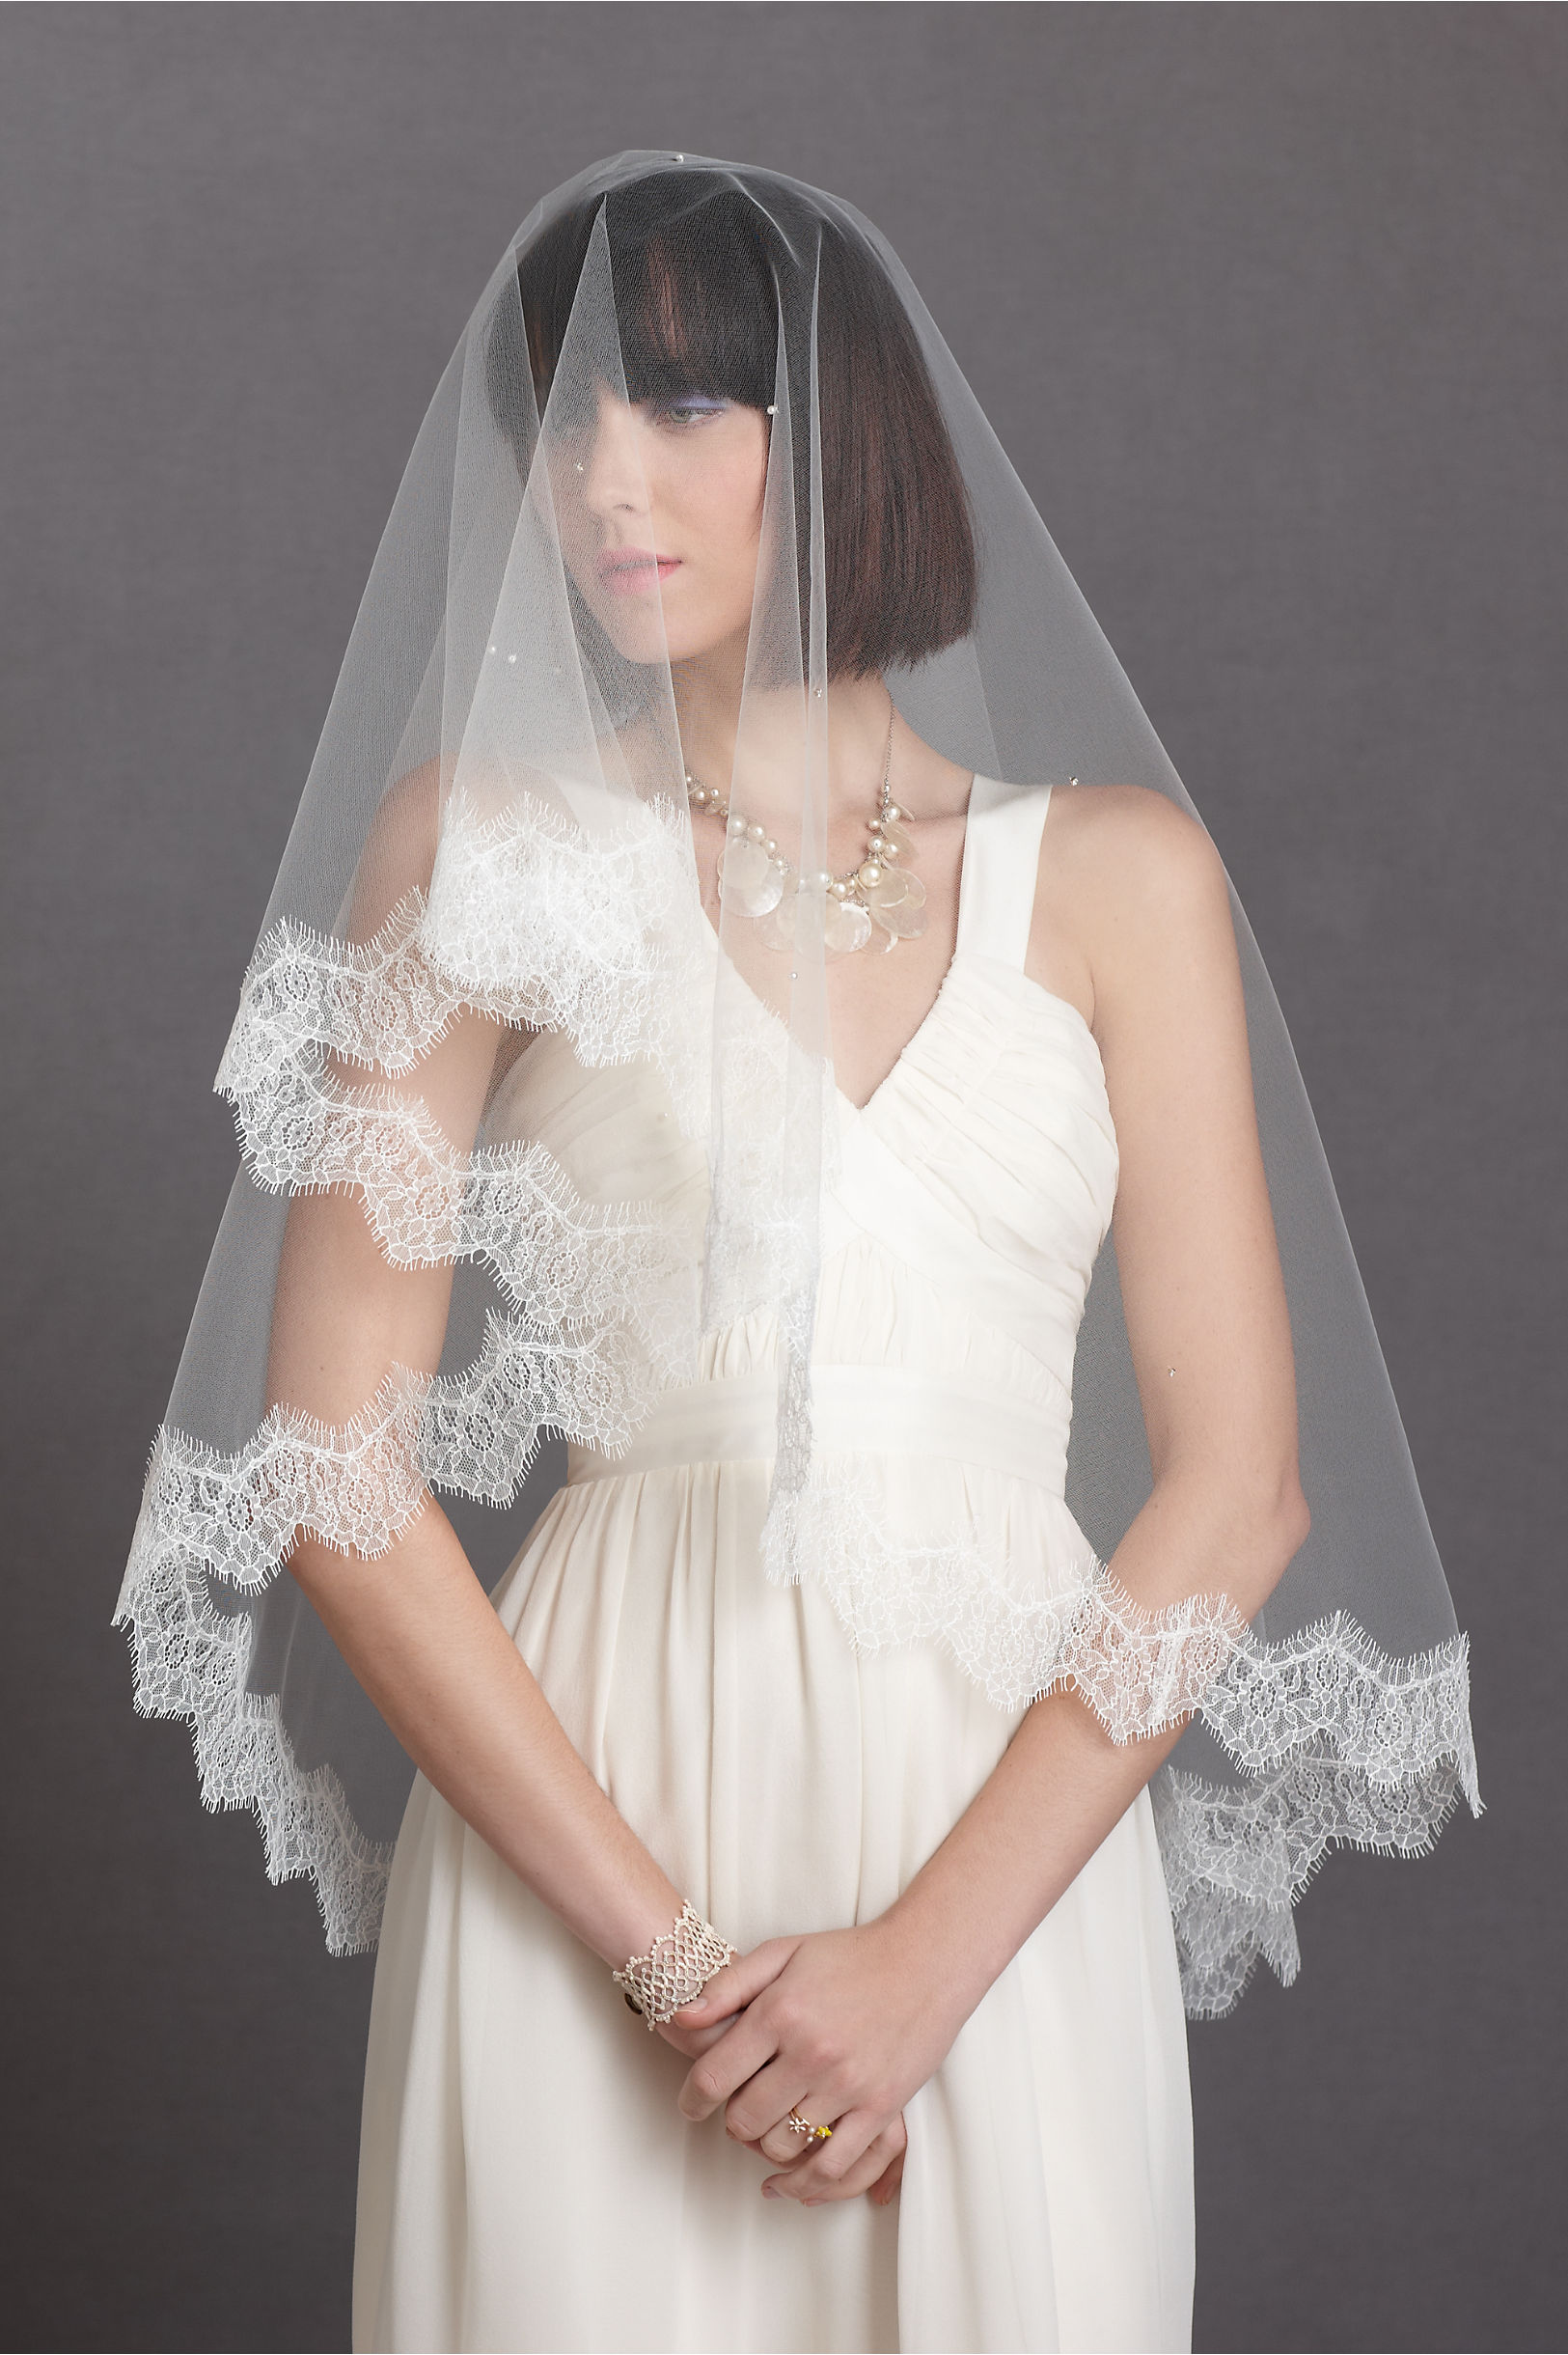 Related Keywords & Suggestions for mantilla veil